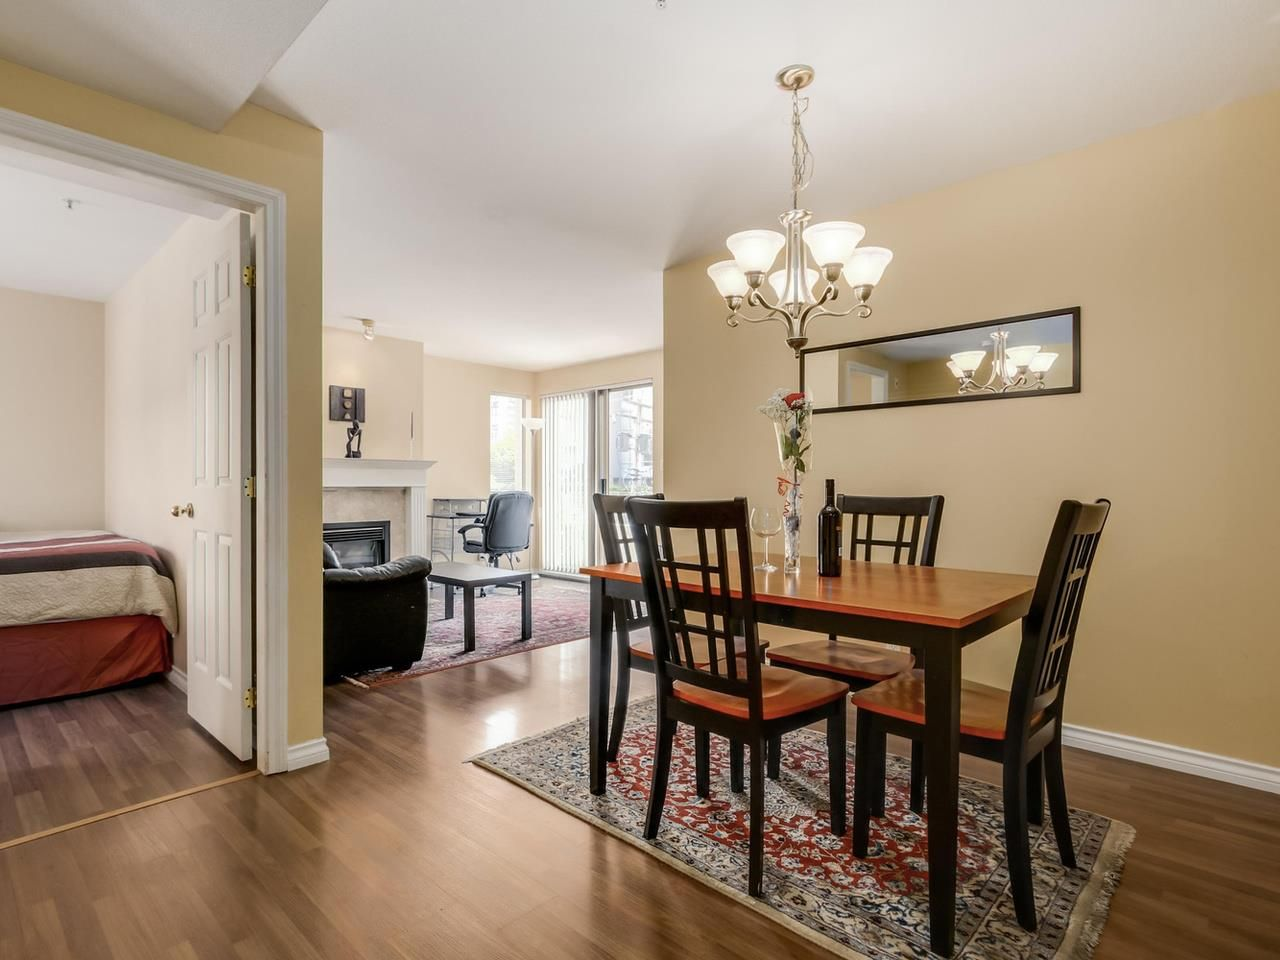 """Photo 2: Photos: 304 137 W 17 Street in North Vancouver: Central Lonsdale Condo for sale in """"Westgate"""" : MLS®# R2075830"""